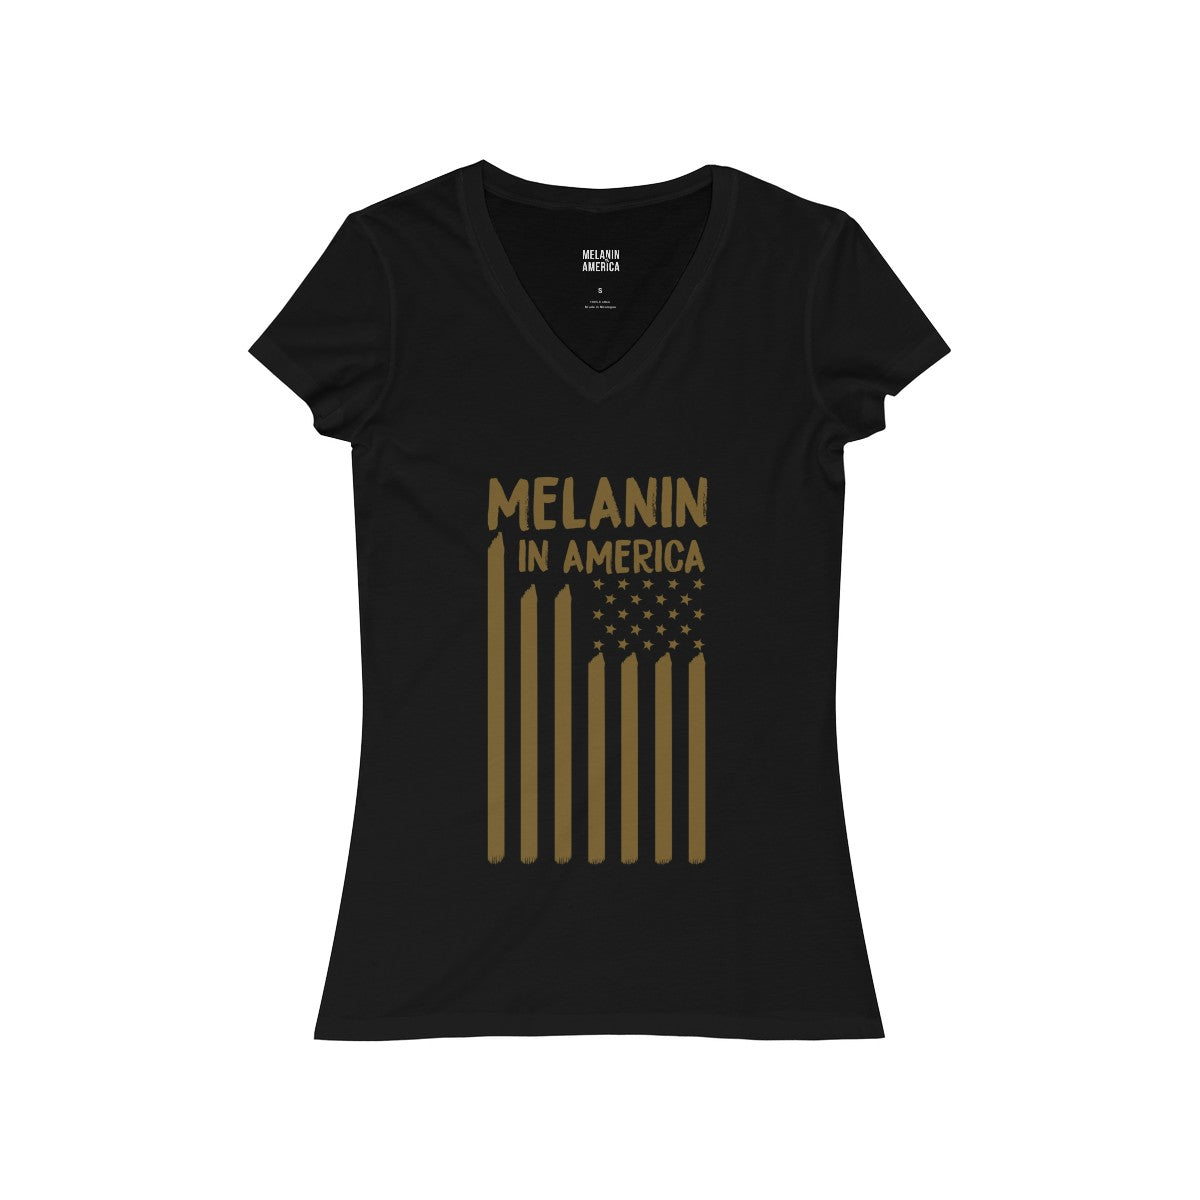 Melanin in America Women's Jersey Short Sleeve V-Neck Tee